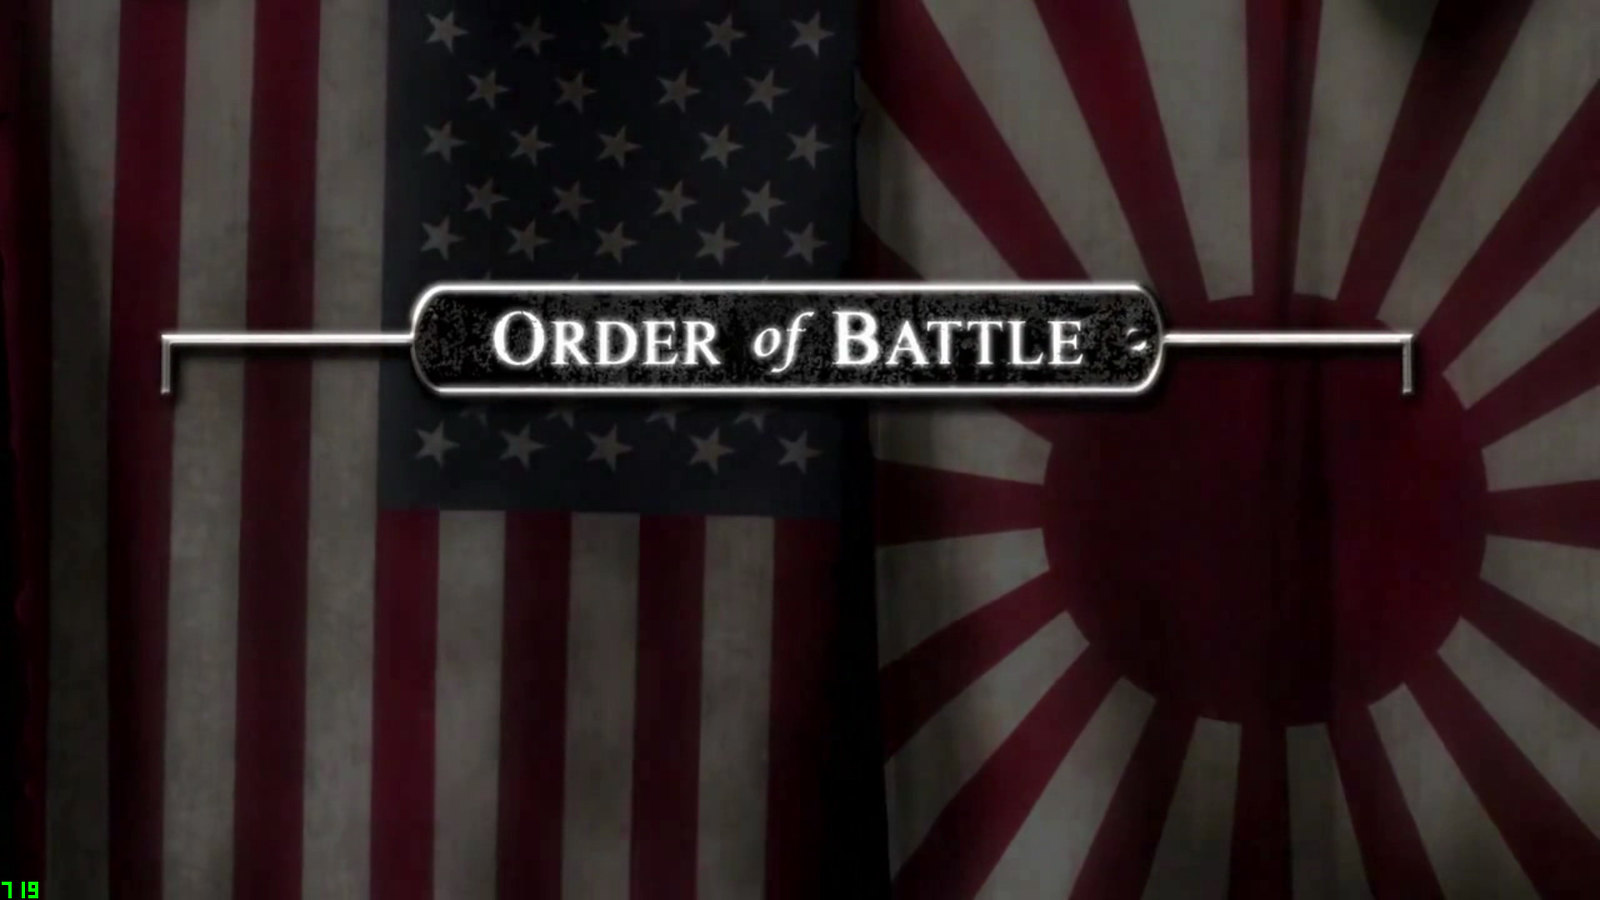 Order of Battle - Intro